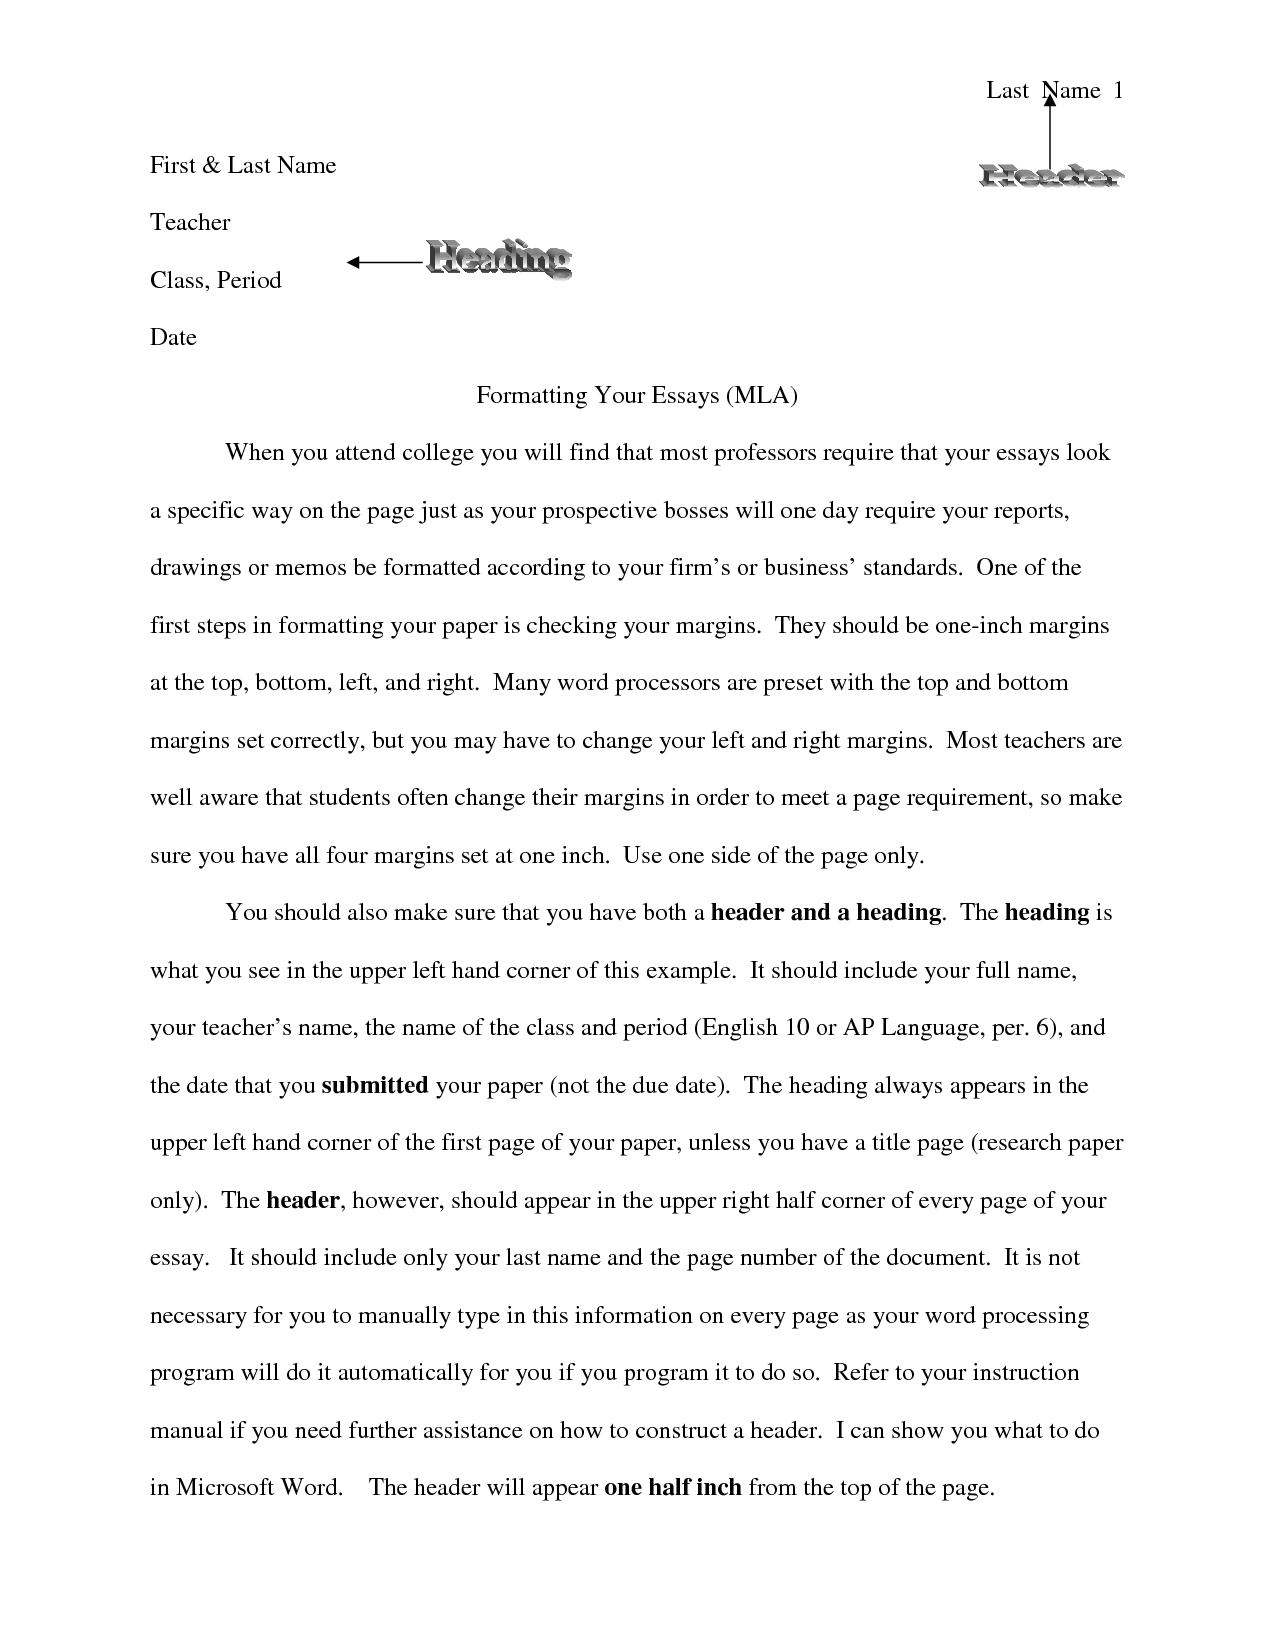 Format Of College Essay NNfTfToFSn Format Of College Essay